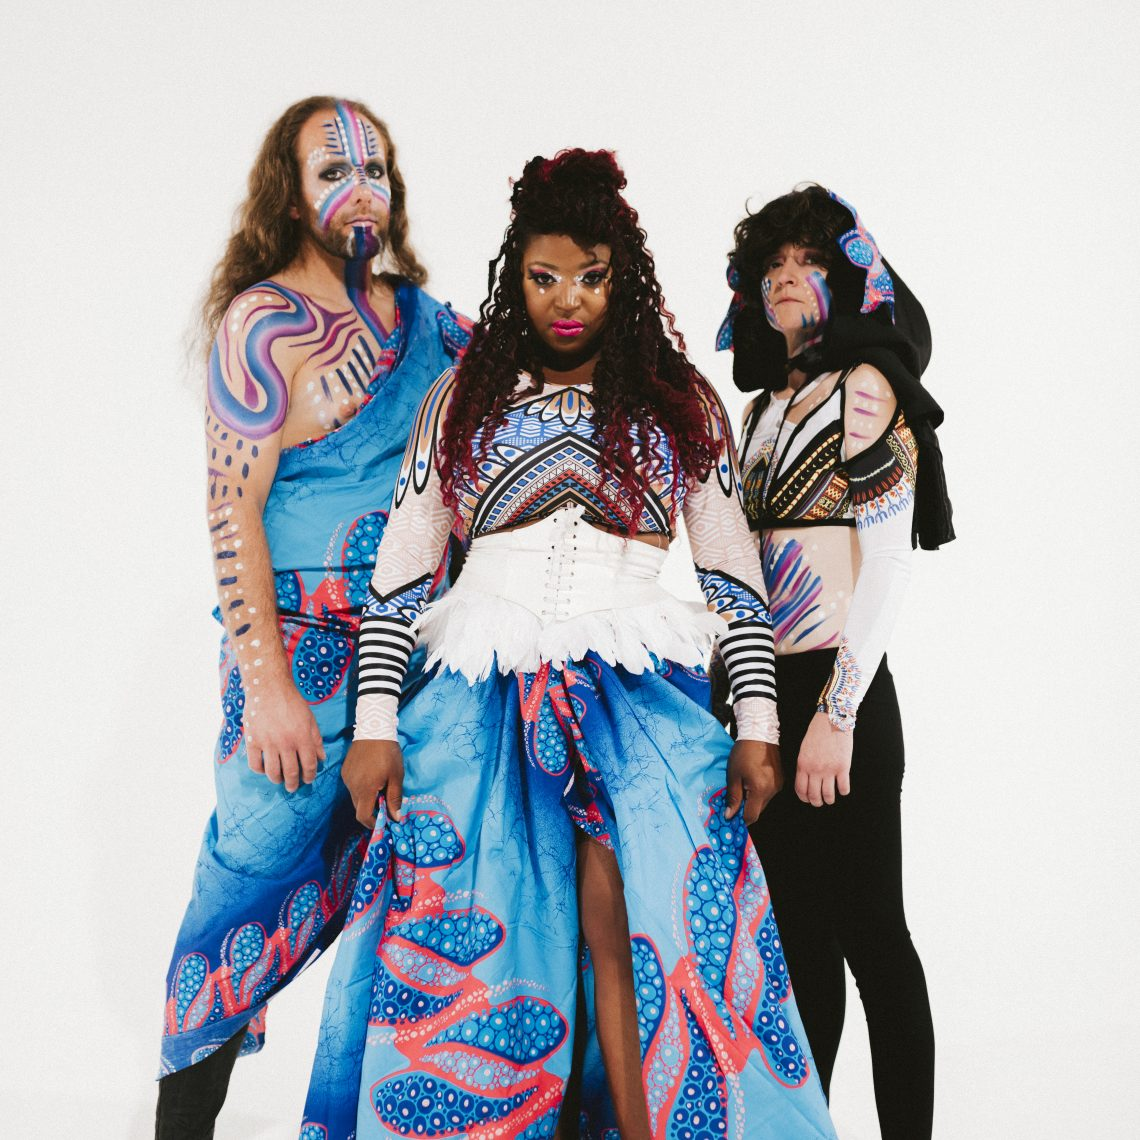 Vodun share new video for 'Rituals' ahead of tour dates